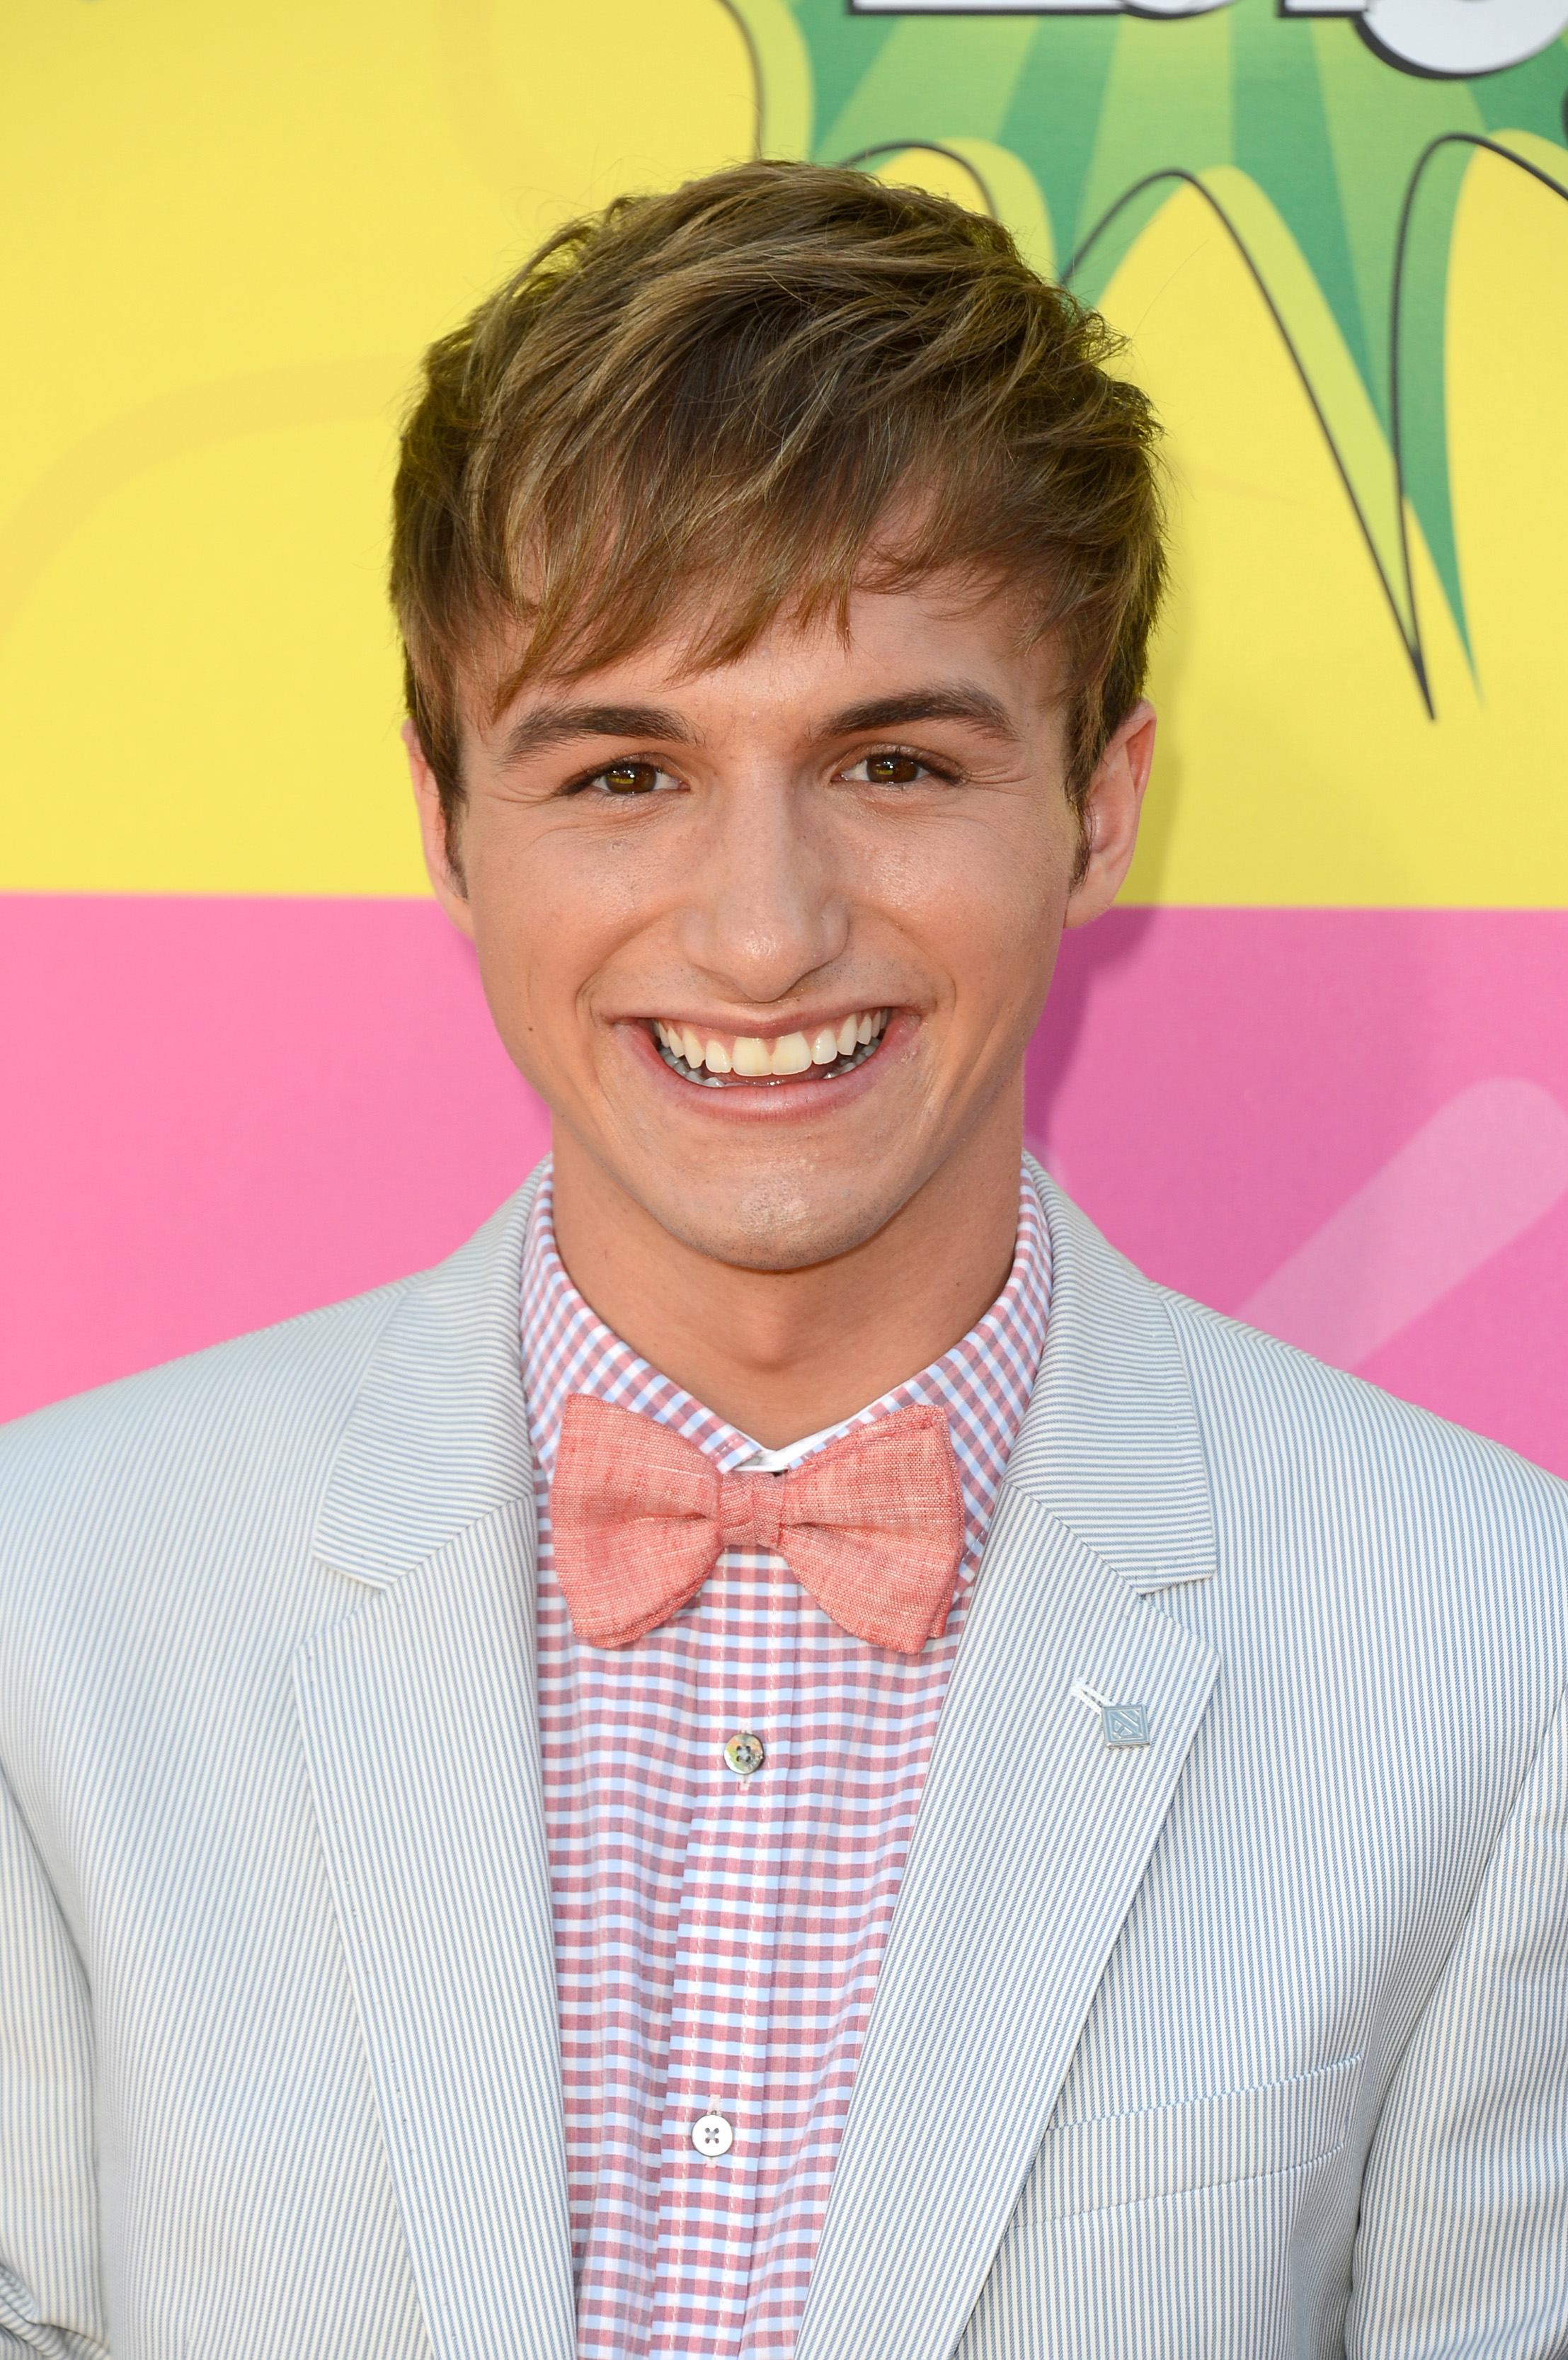 Nickelodeon's 'Fred' Star Lucas Cruikshank Comes Out as ...